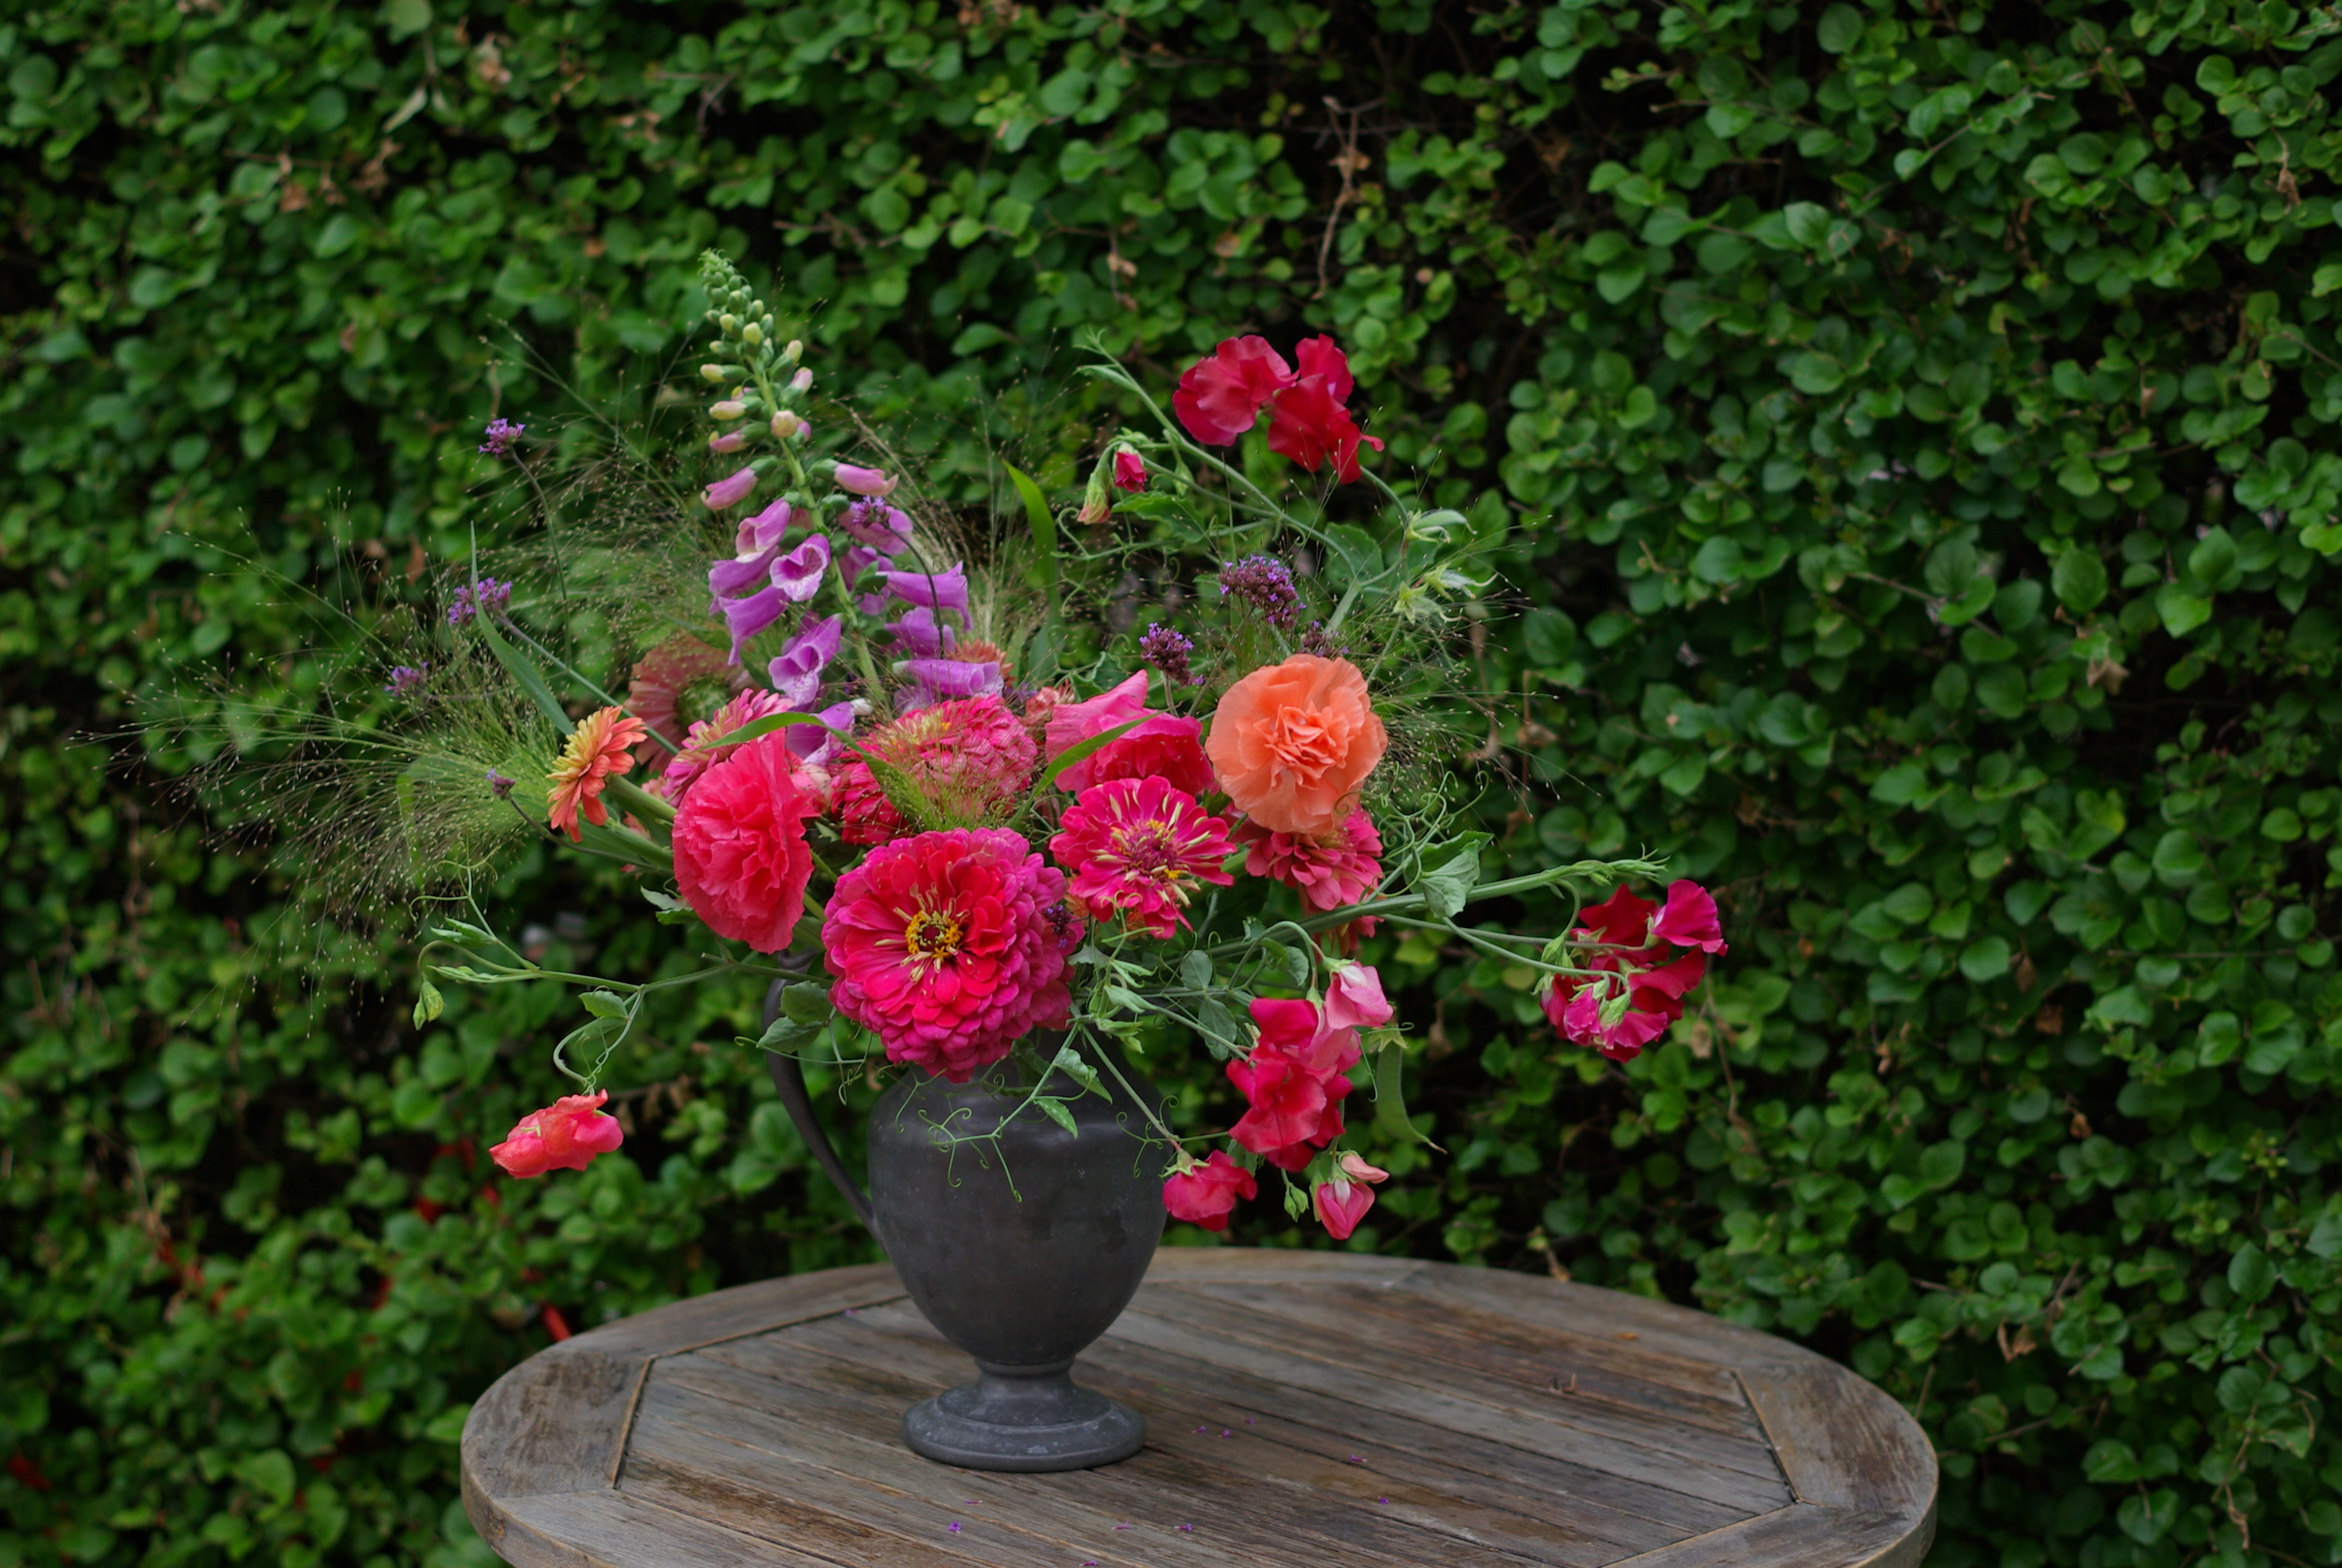 The garden in late July is full of bright zinnias, poppies, sweet peas and foxglove. The grass is my favourite variety, 'Frosted Explosion,' which is easy to grow from seed.